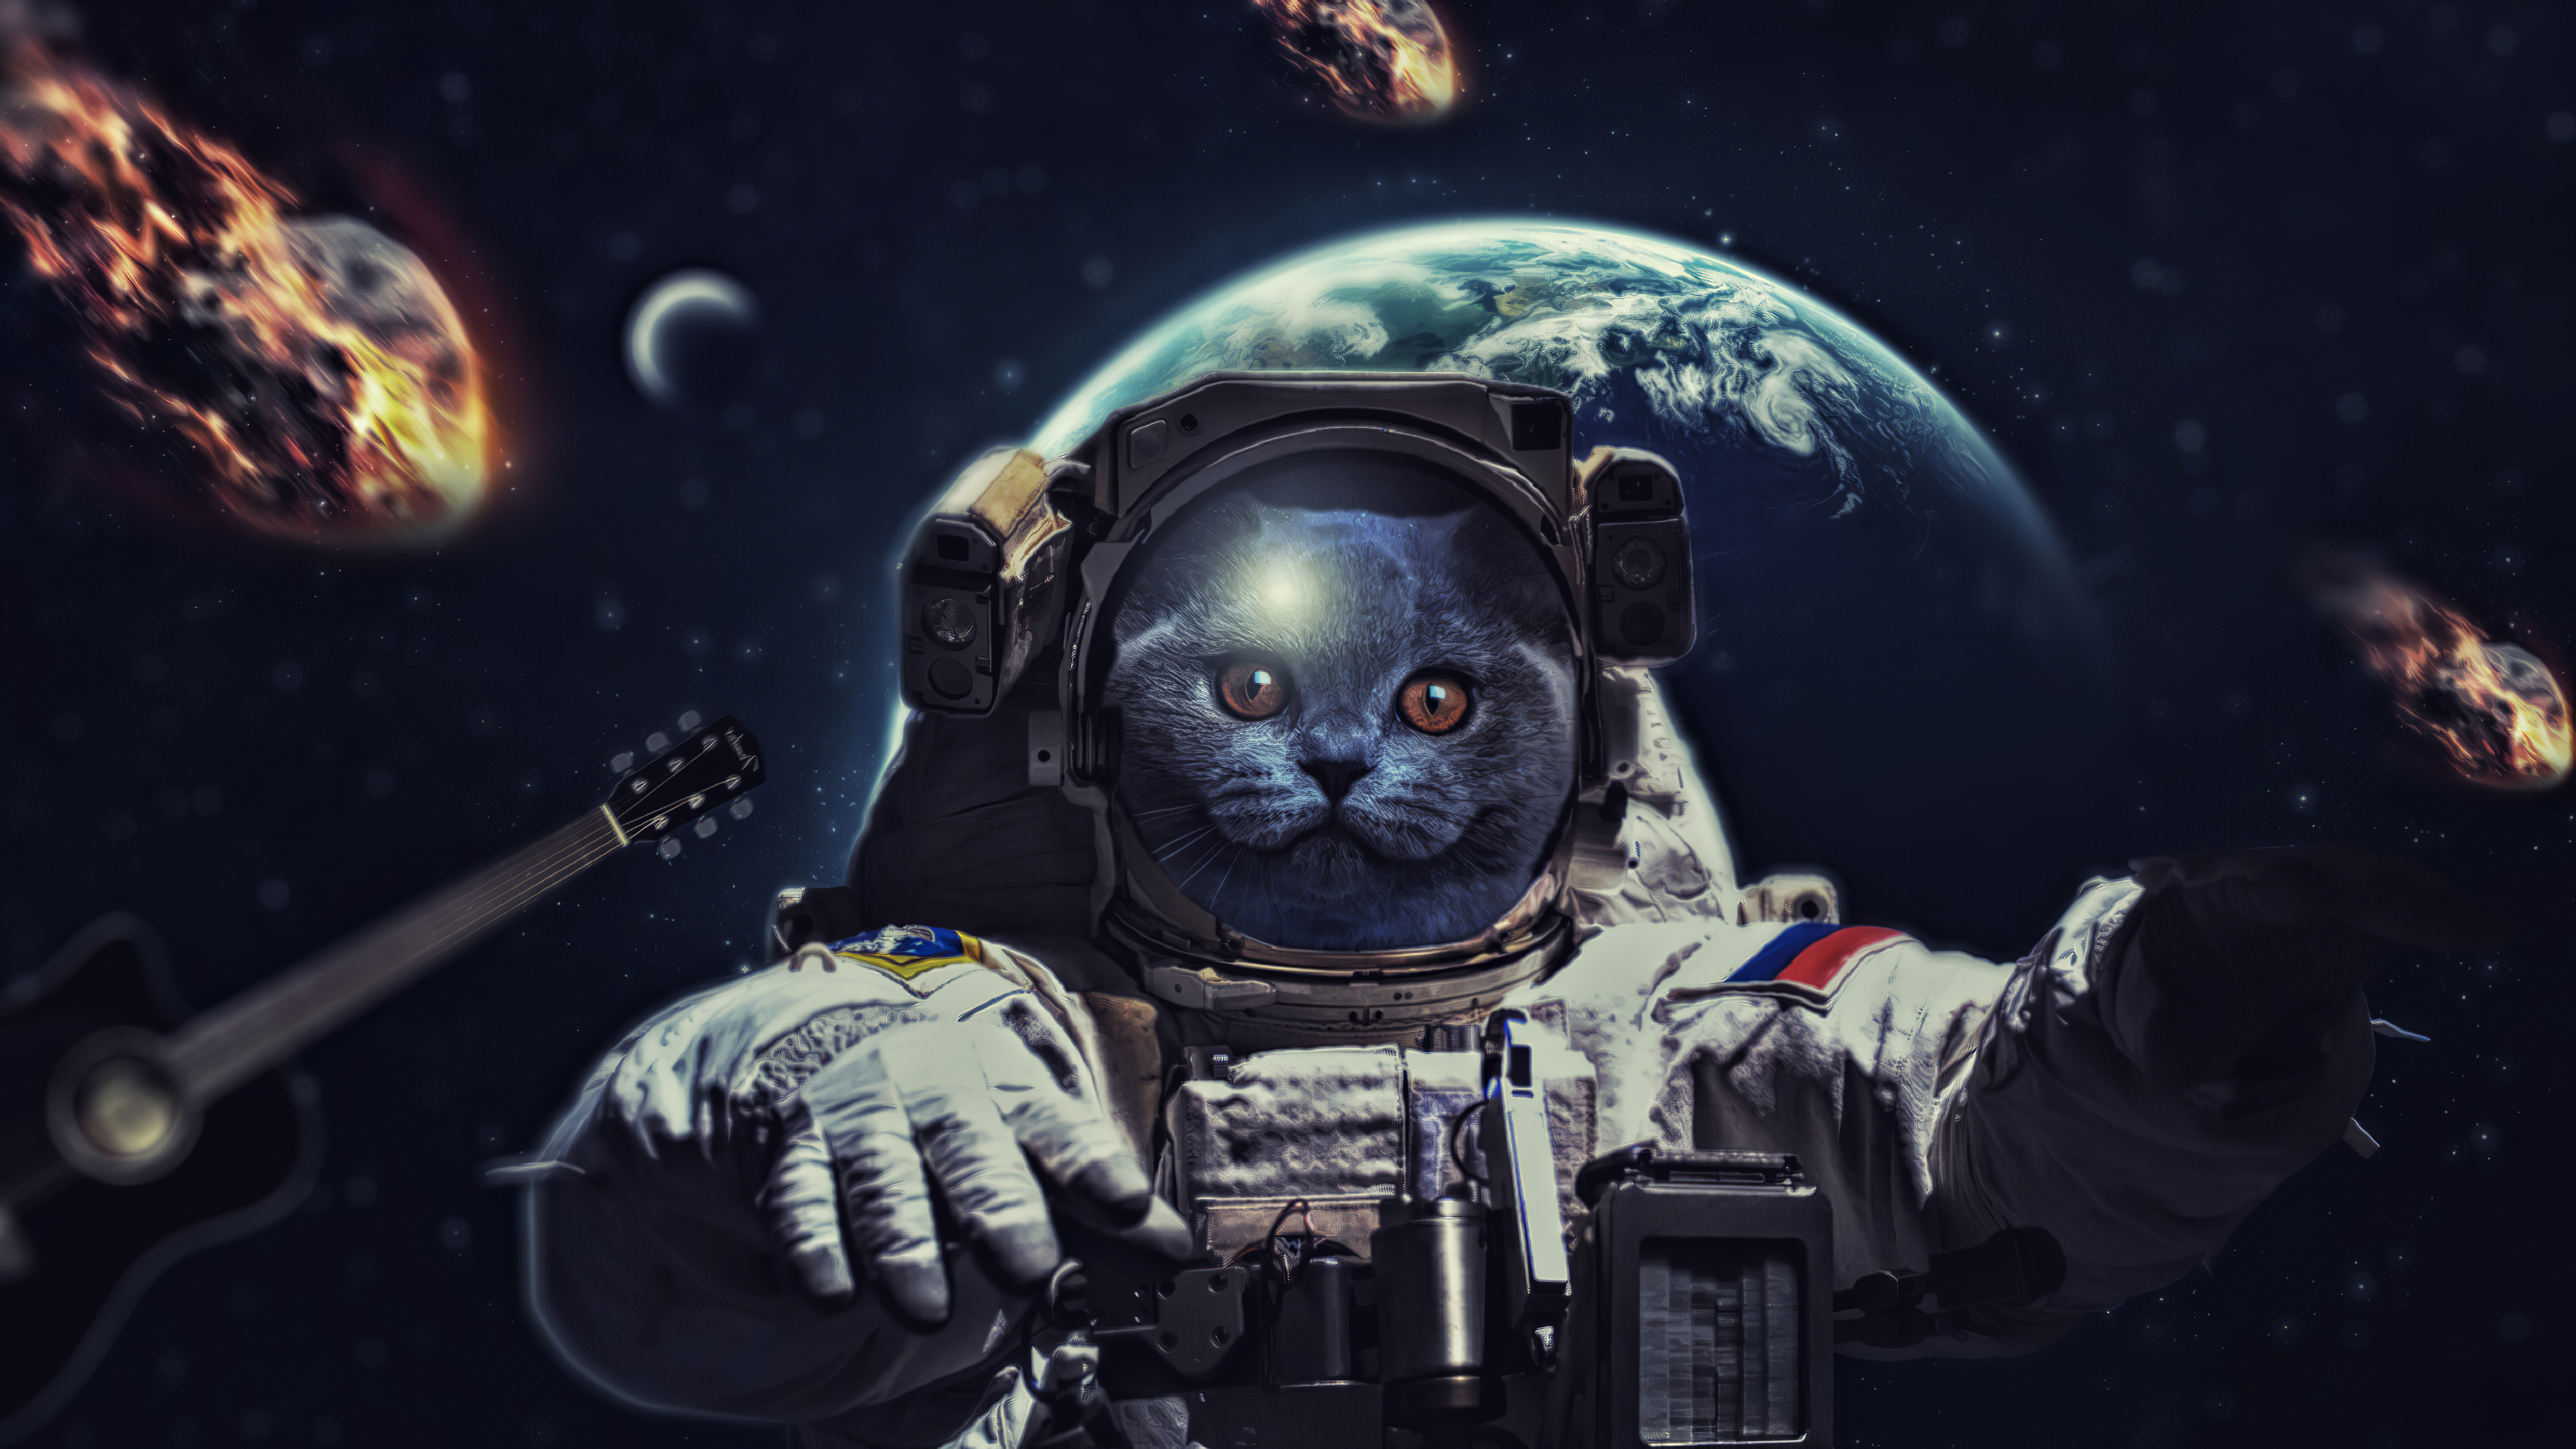 Wallpaper Of Astronaut Cat Space Background Hd Image